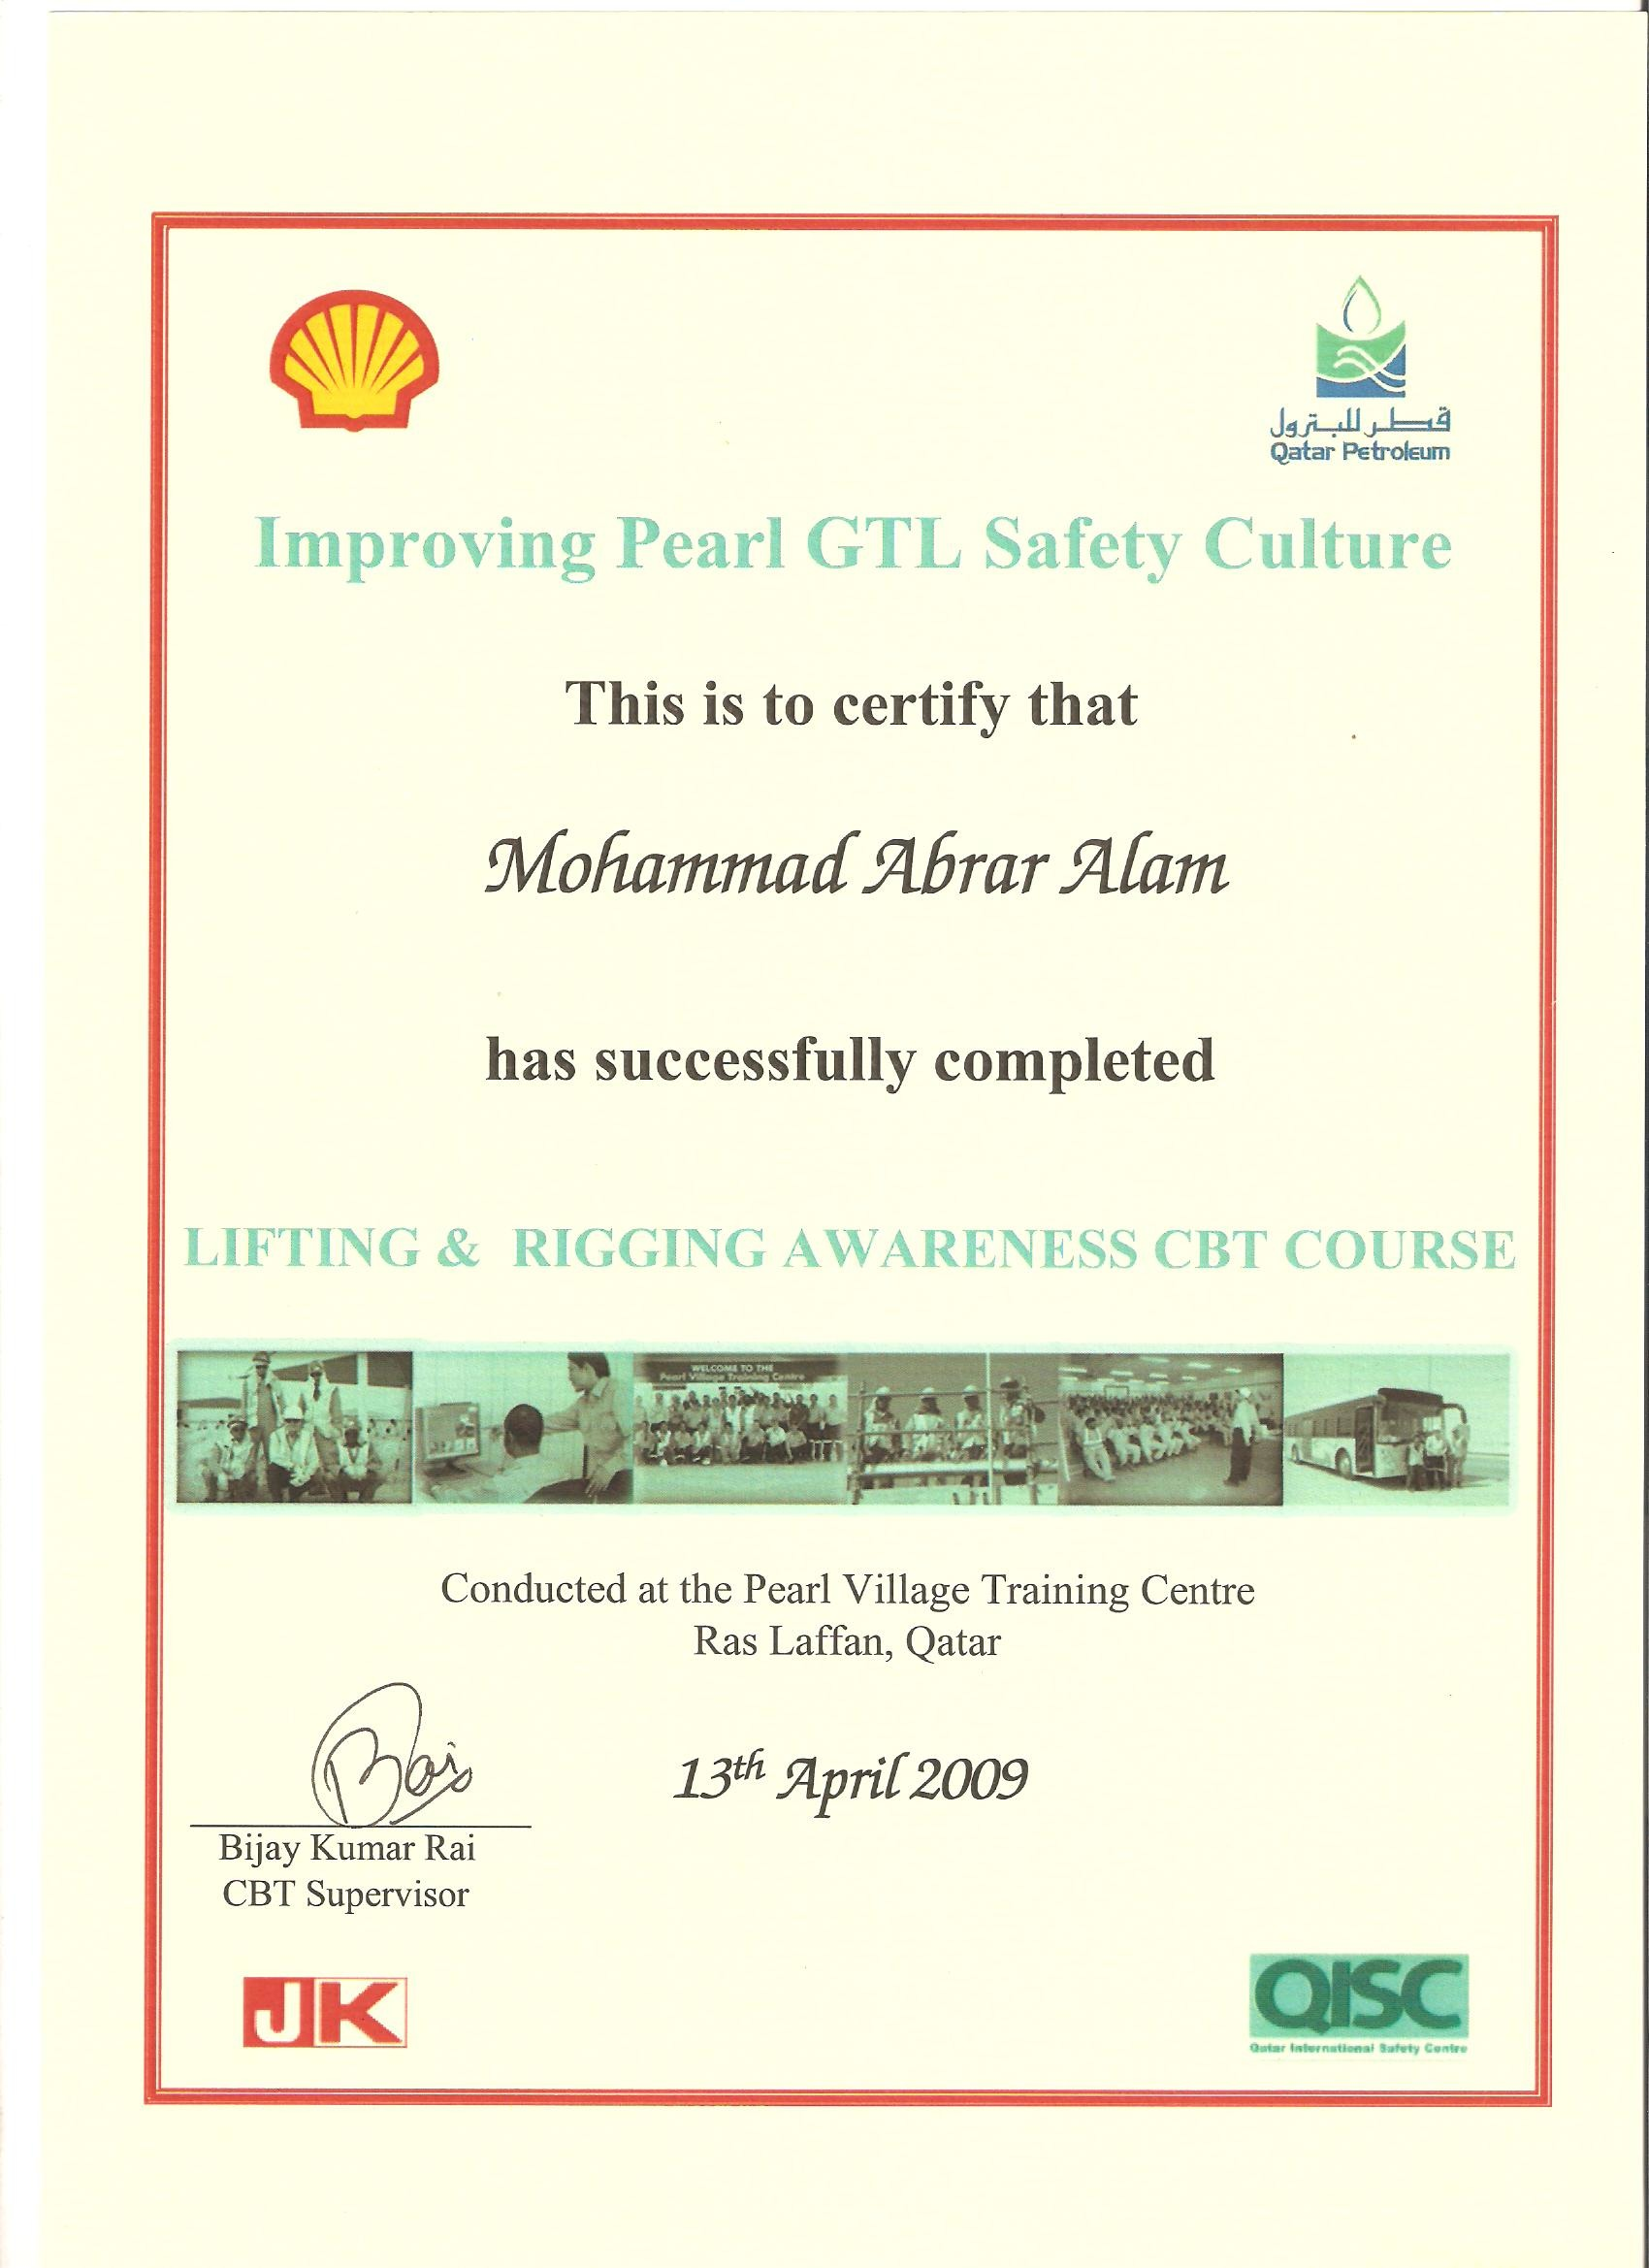 Mohammad abrar alam bayt lifting rigging pearl village training centre doha qatar certificate 1betcityfo Image collections